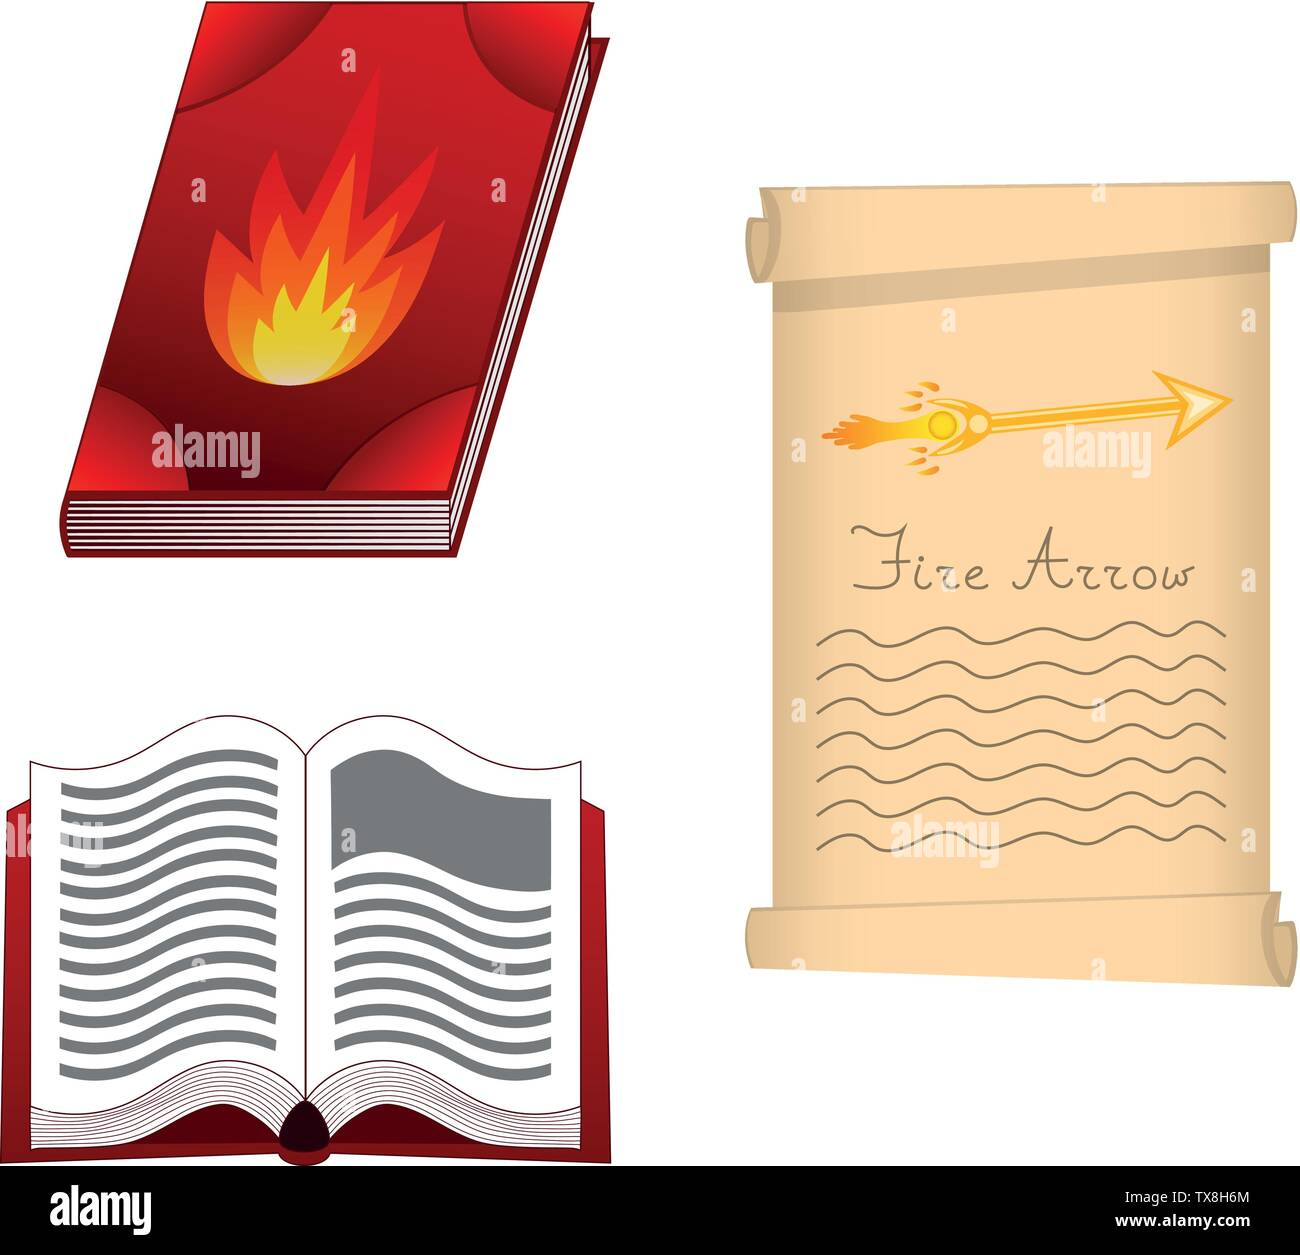 Spell book of fire element for Your Design, Game, Card. Fire Arrow. Ancient book with mystic spells and enchantments. Isolated GUI design elements. Ve - Stock Image